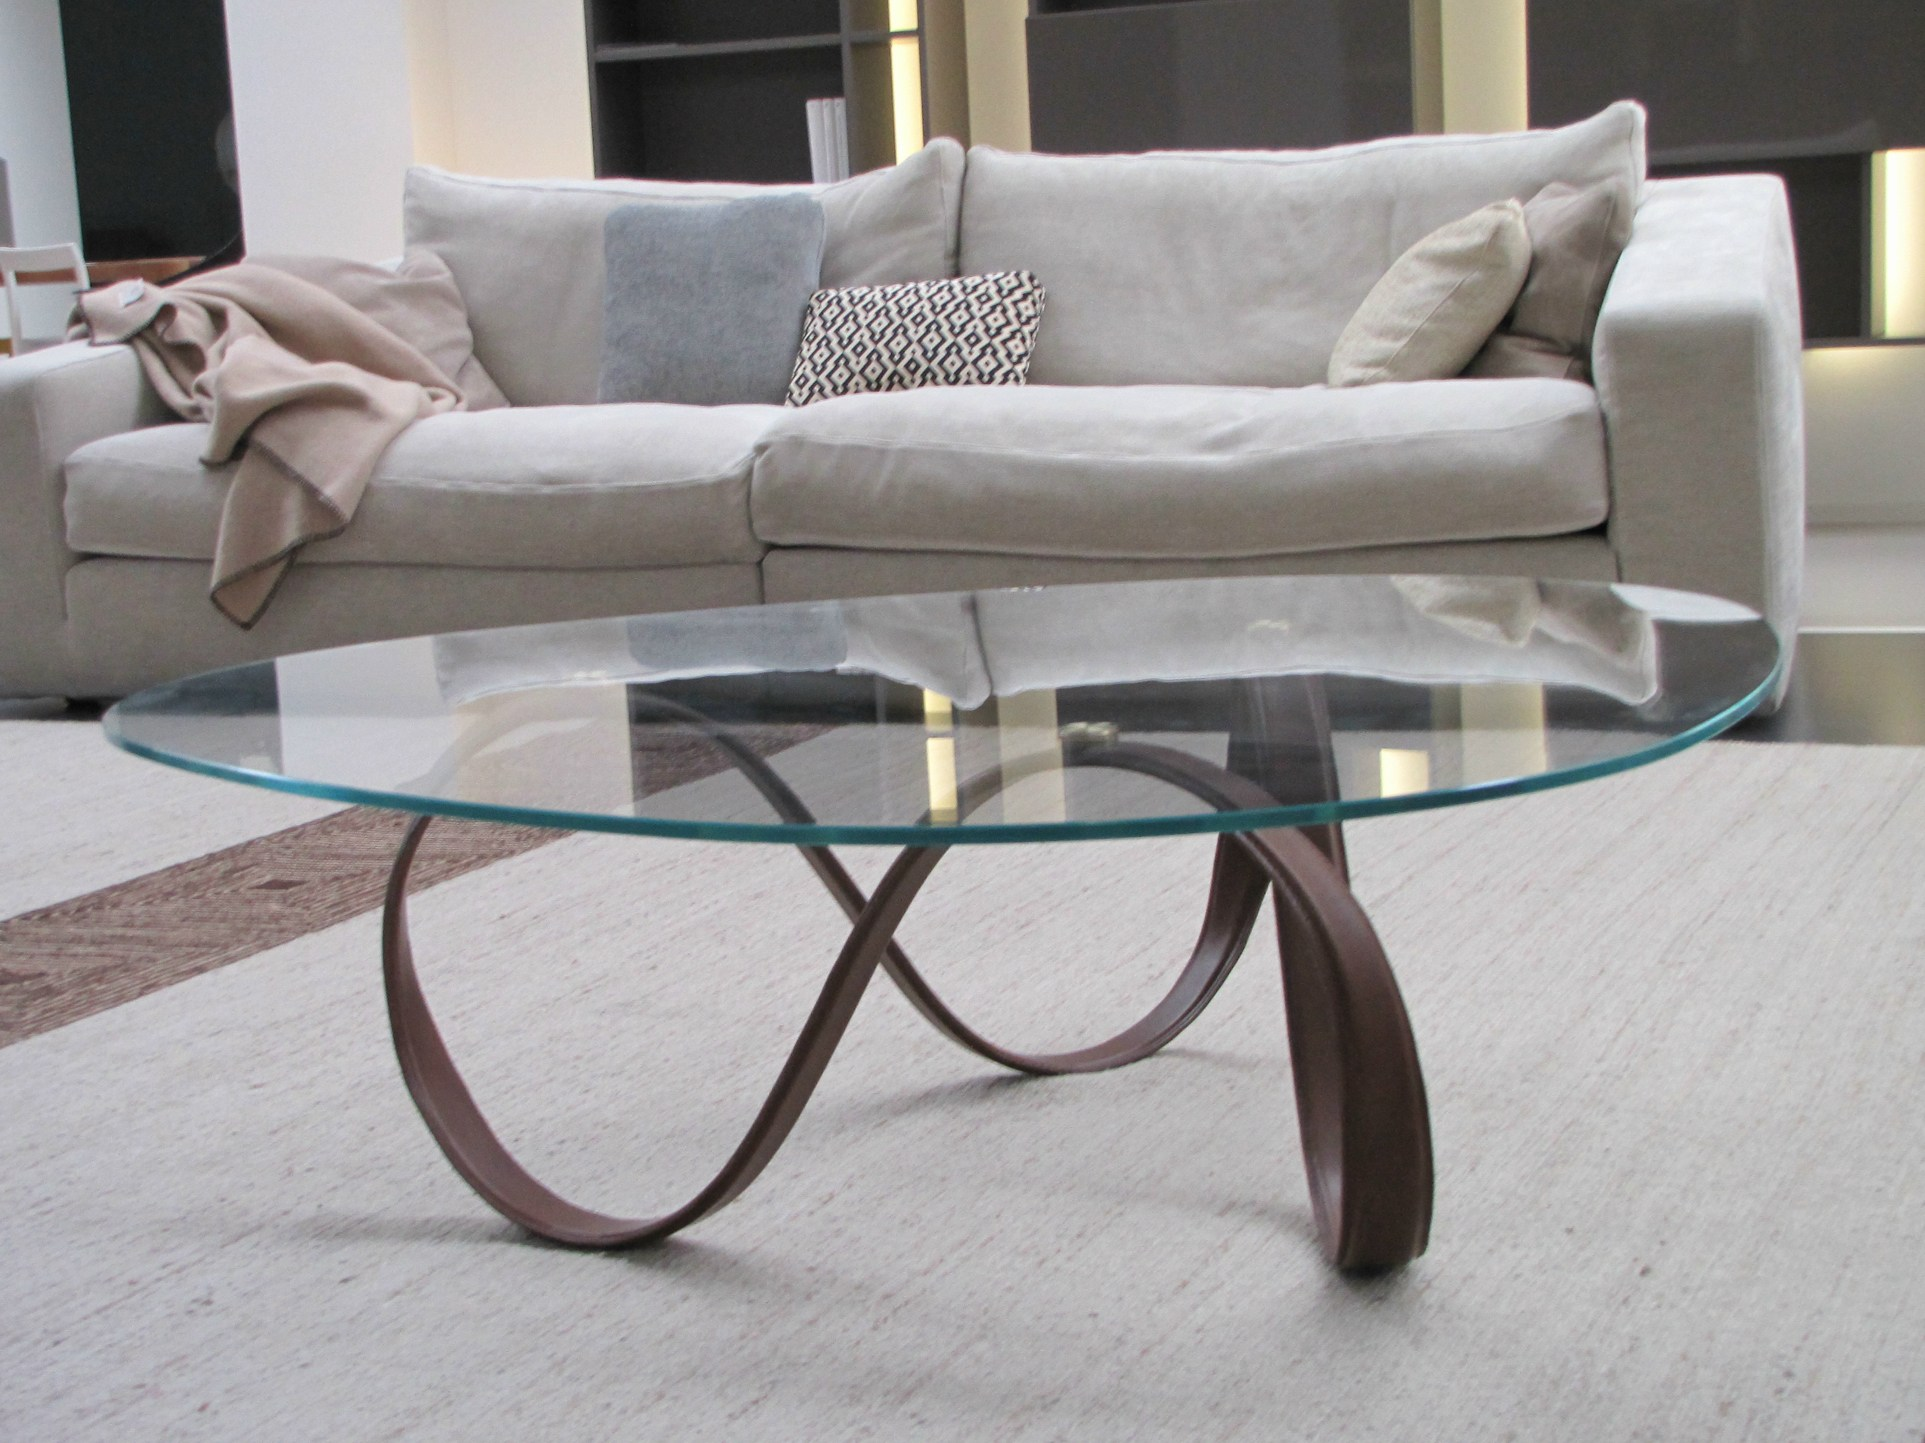 glass dining round tables modern crackle products with base metal mortise tripod table